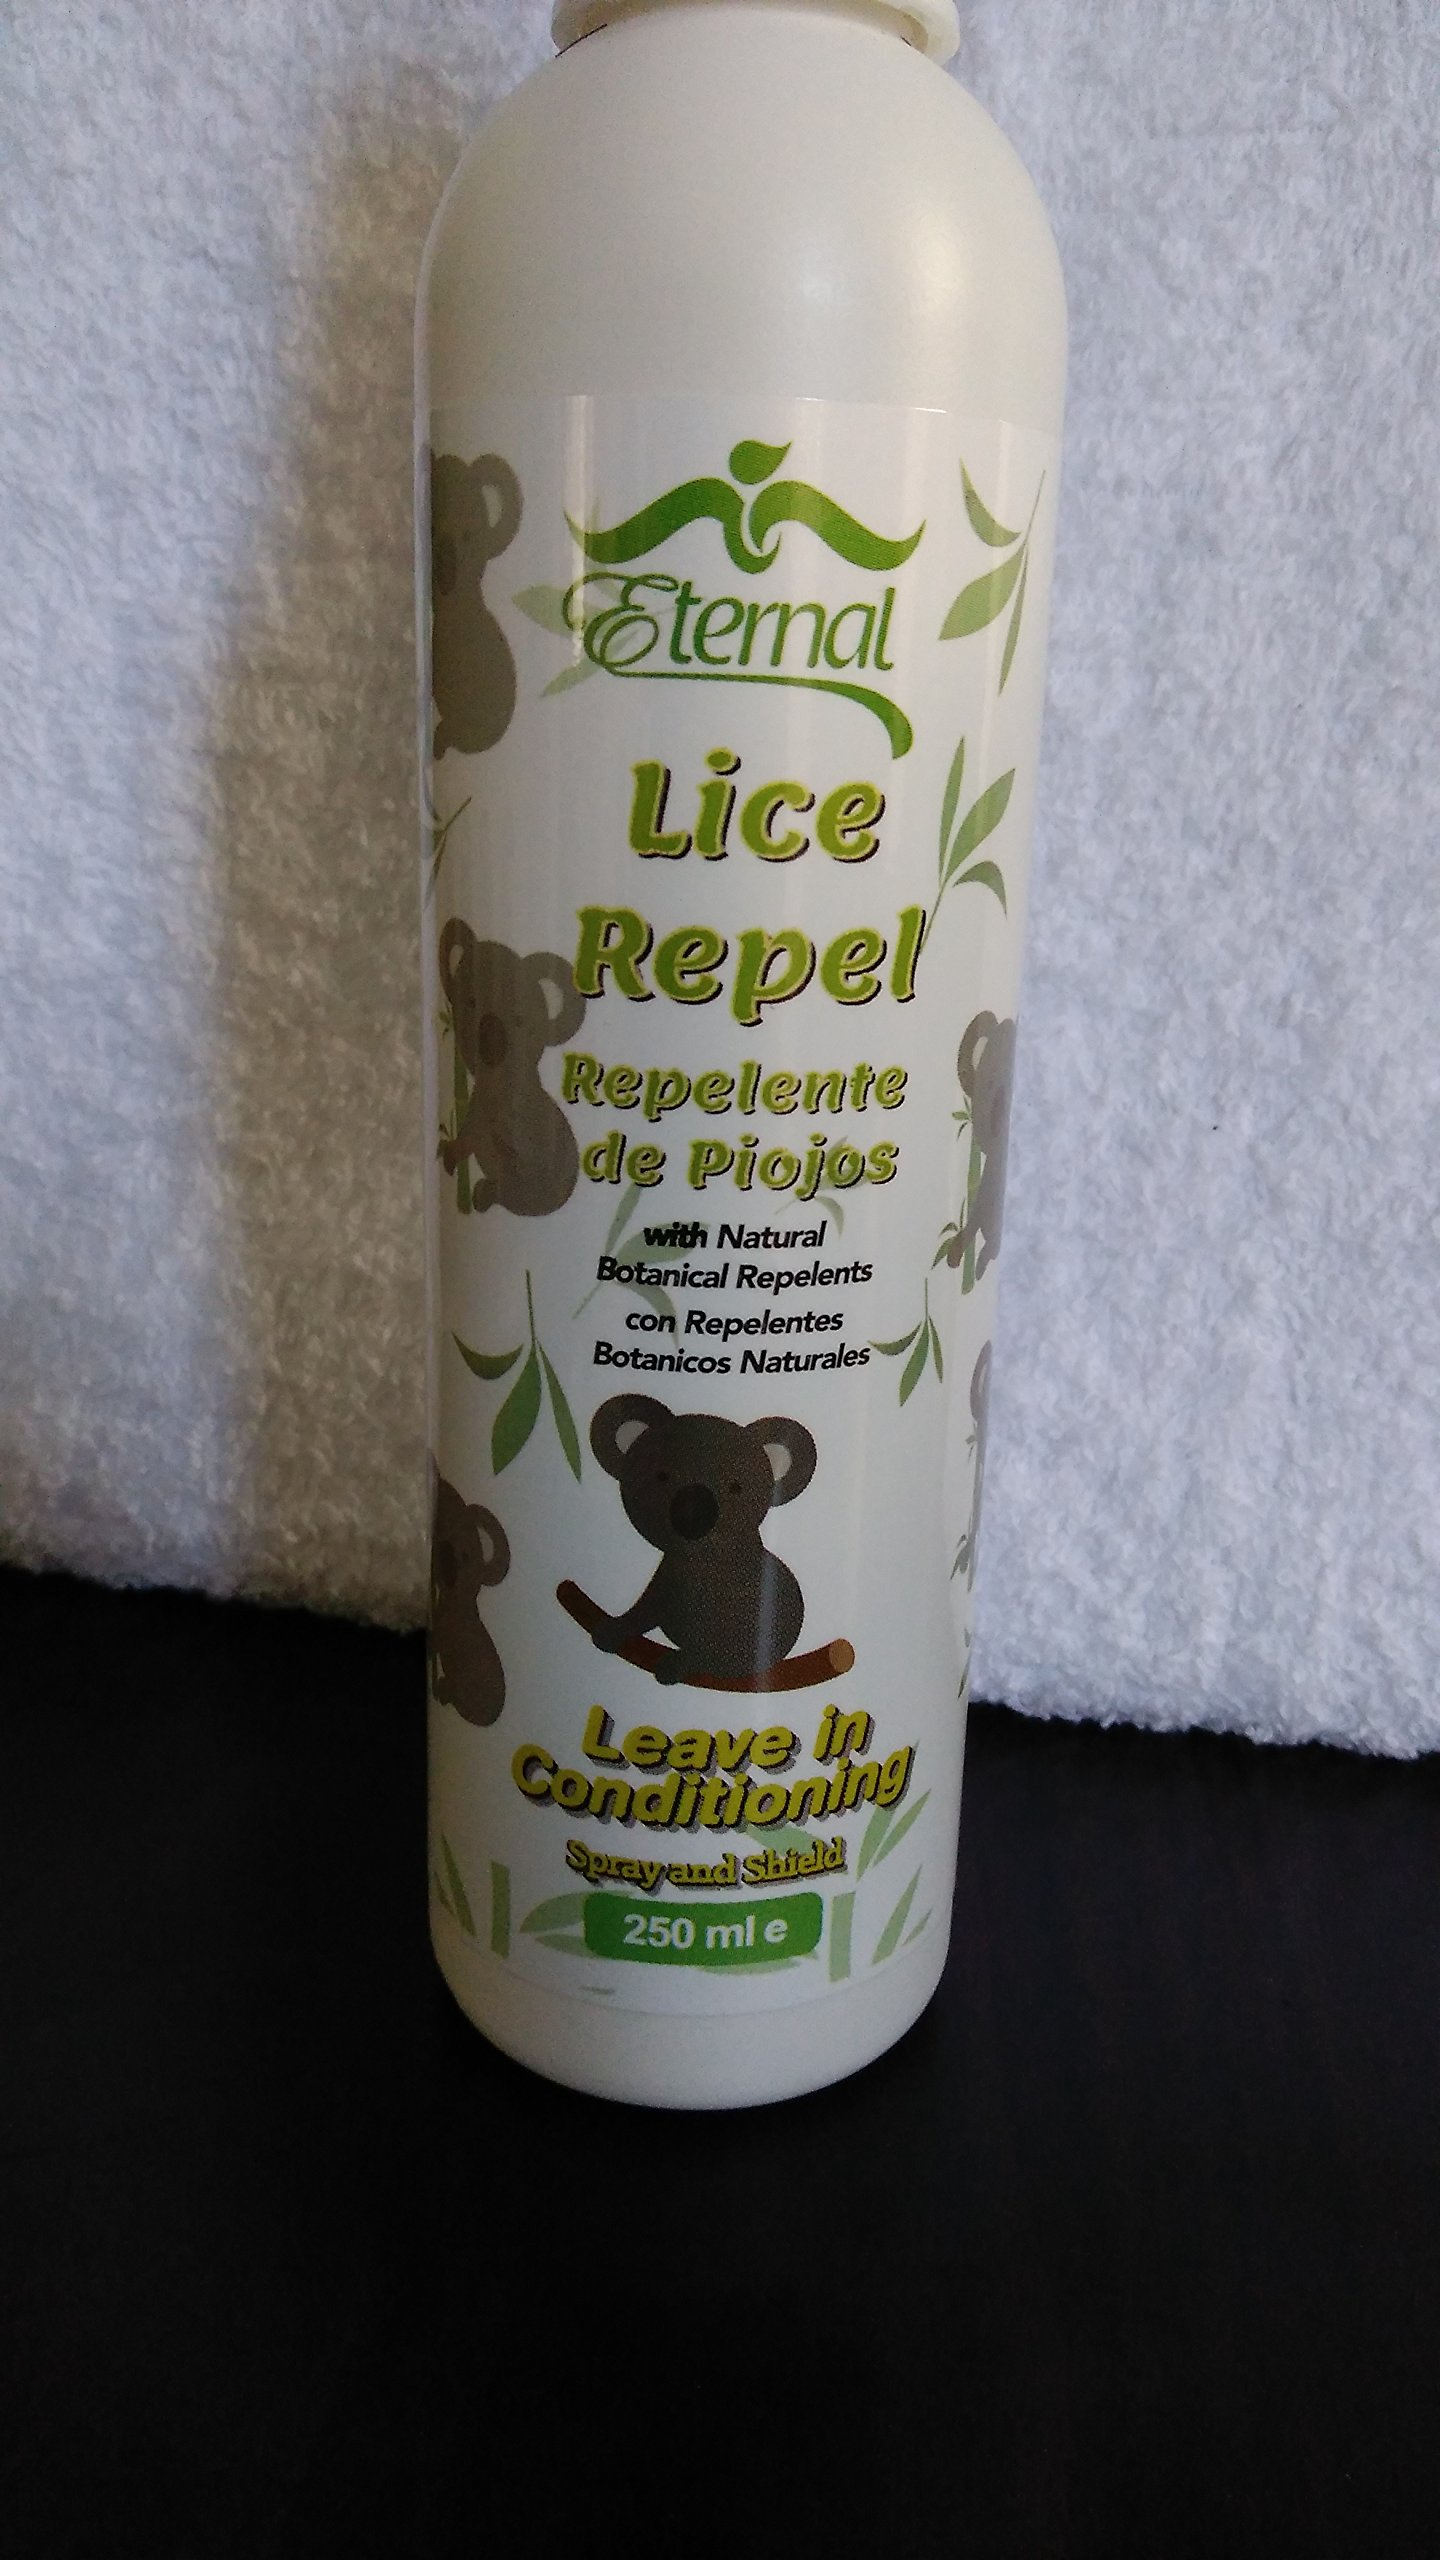 Eternal - Natural Lice Prevention Kit - 3 Product Head Lice Repel Kit Includes Shampoo, Conditioner, and Lice Repellant Spray ( with Rosemary, Keratin and collagen)